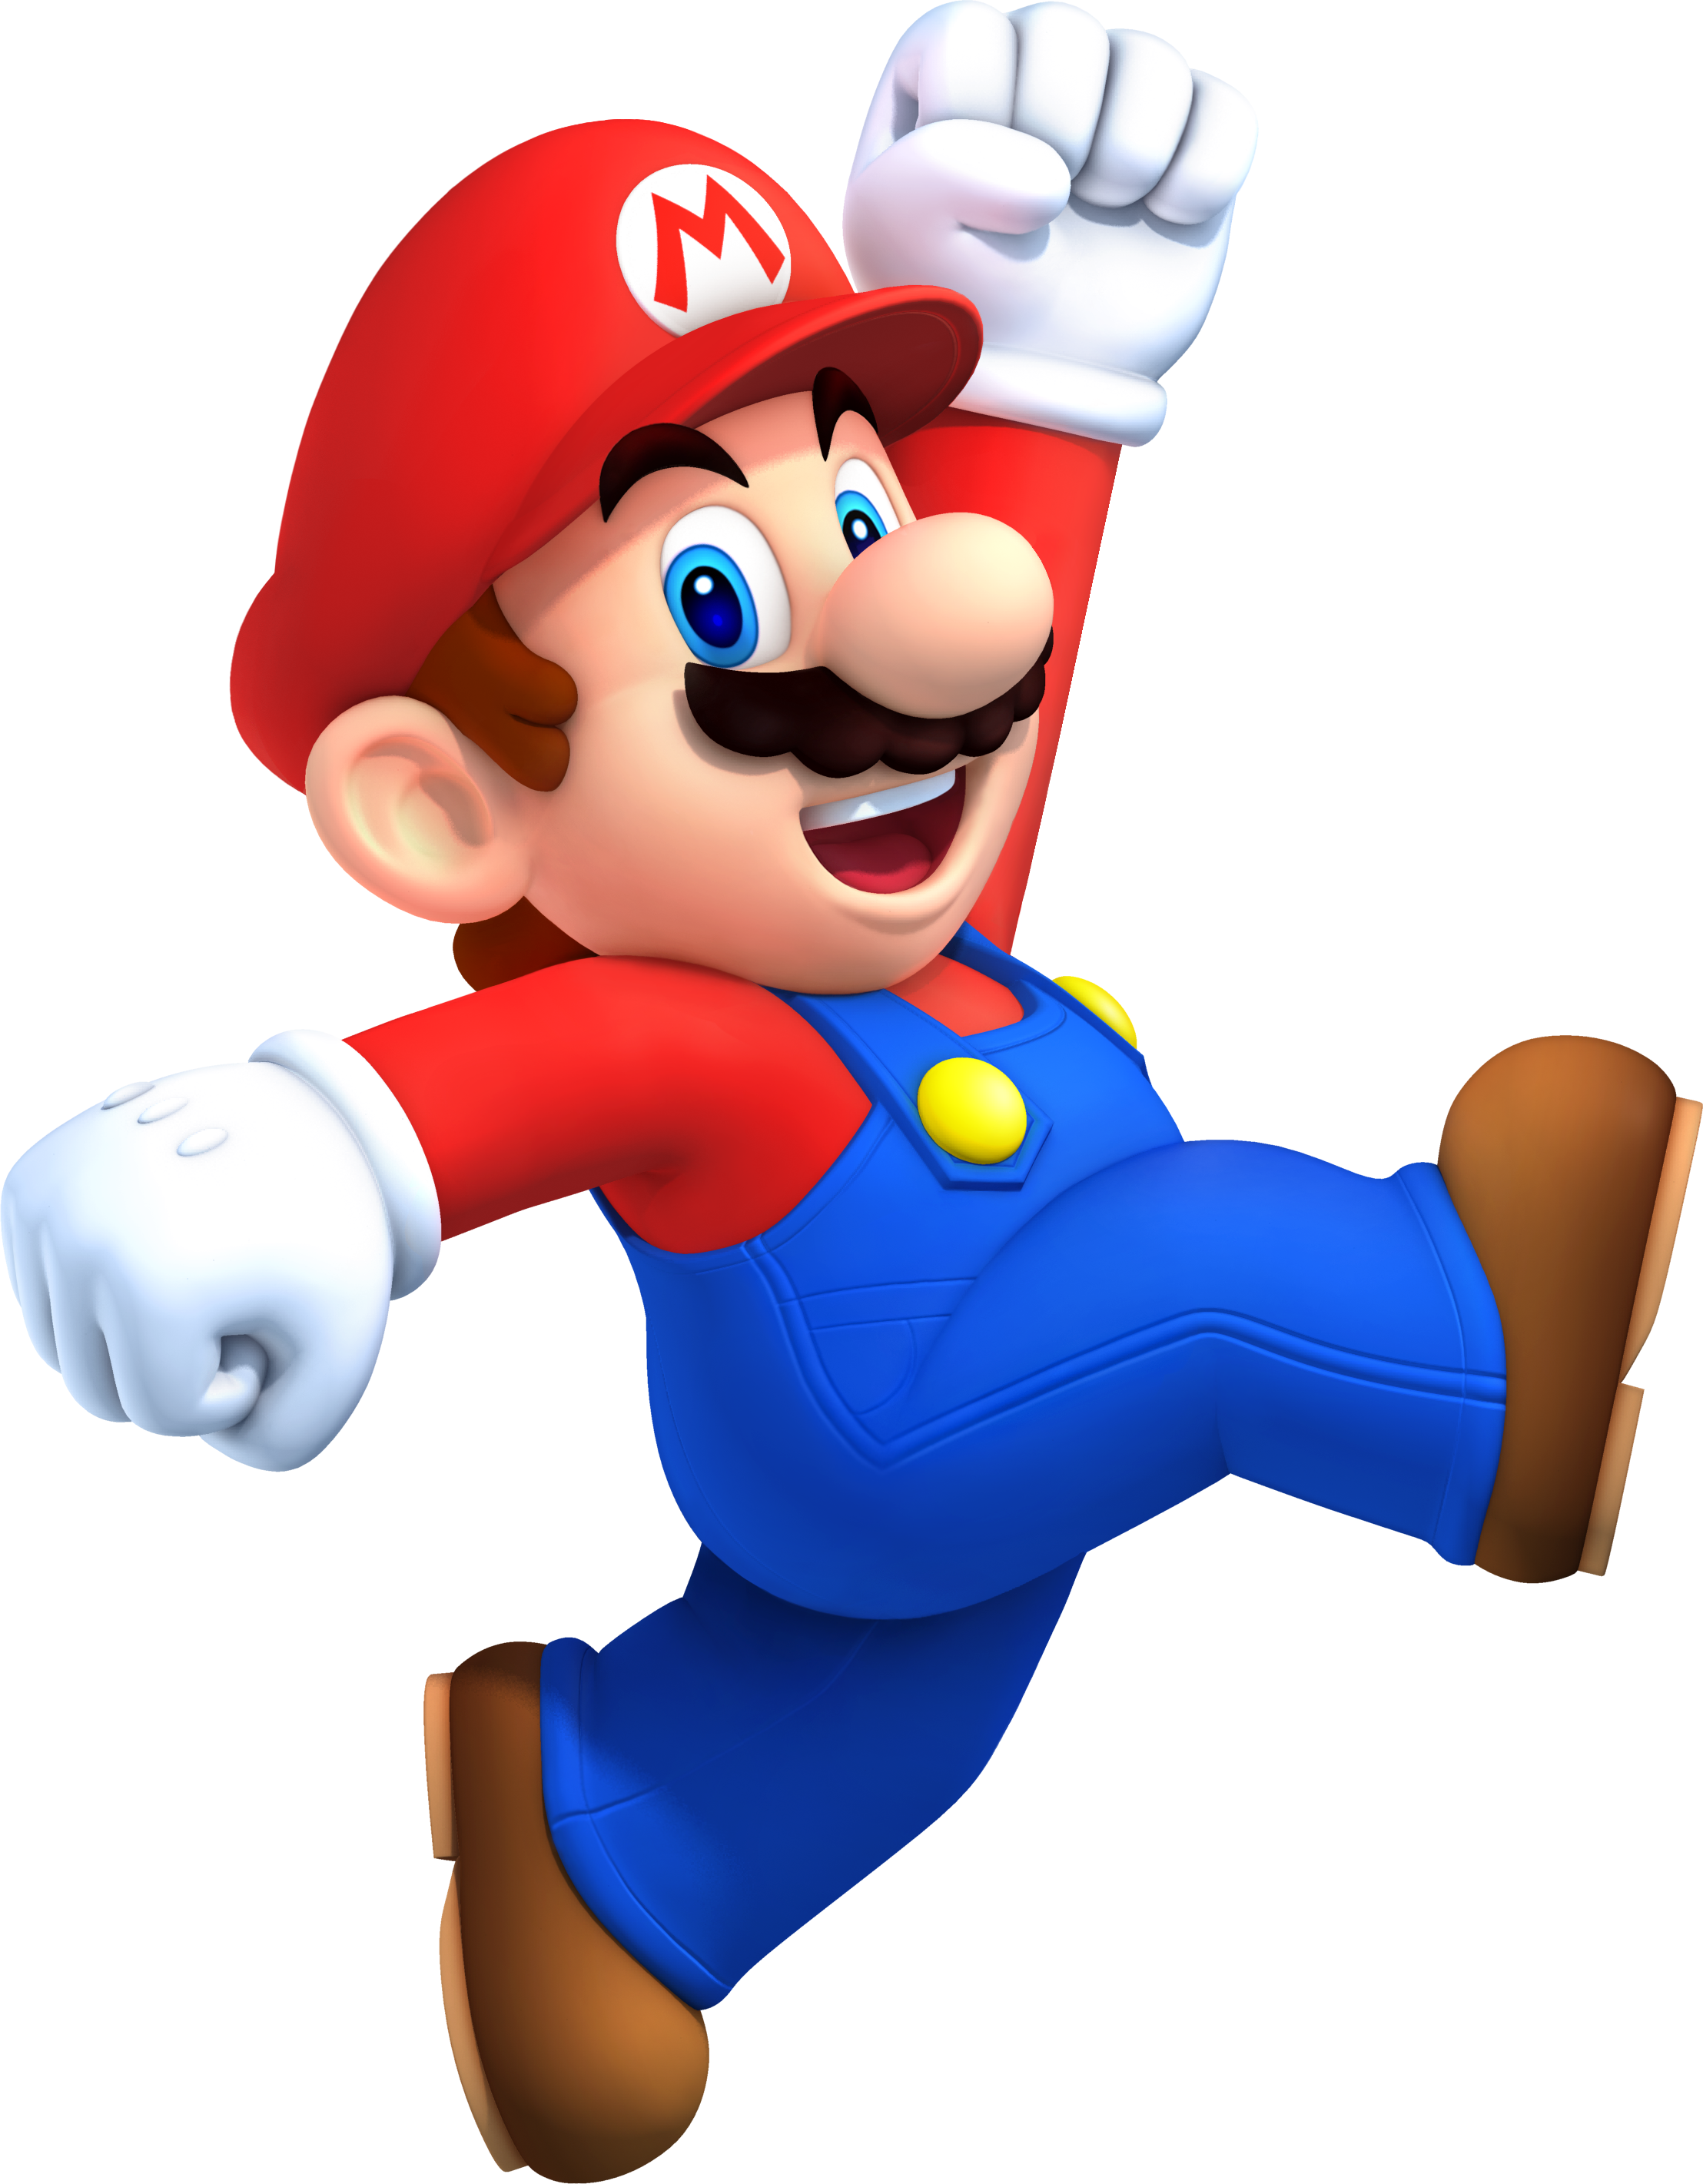 Mario - mariowiki, the encyclopedia of everything mario